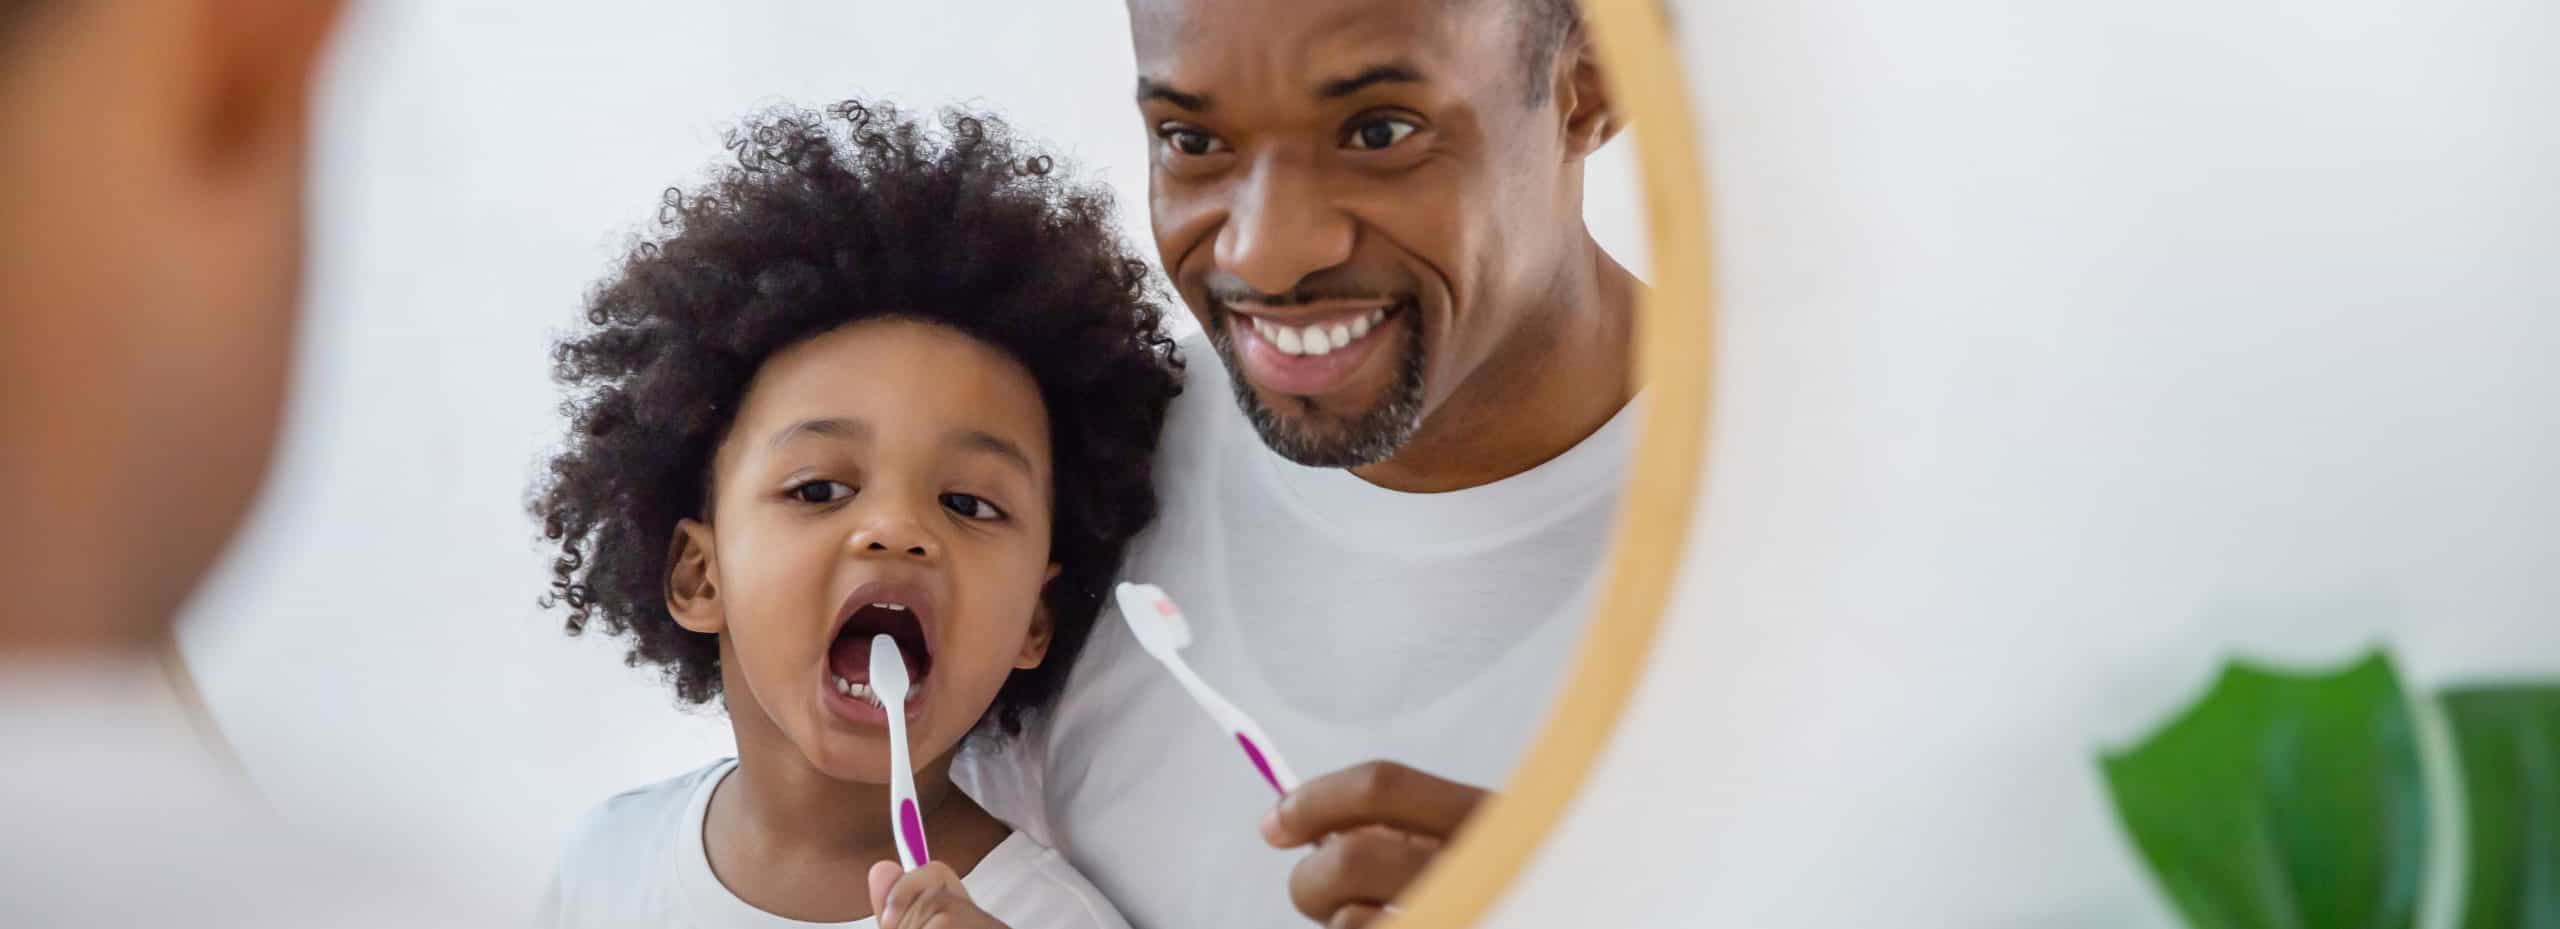 Tips to Get Your Child to Brush their Teeth